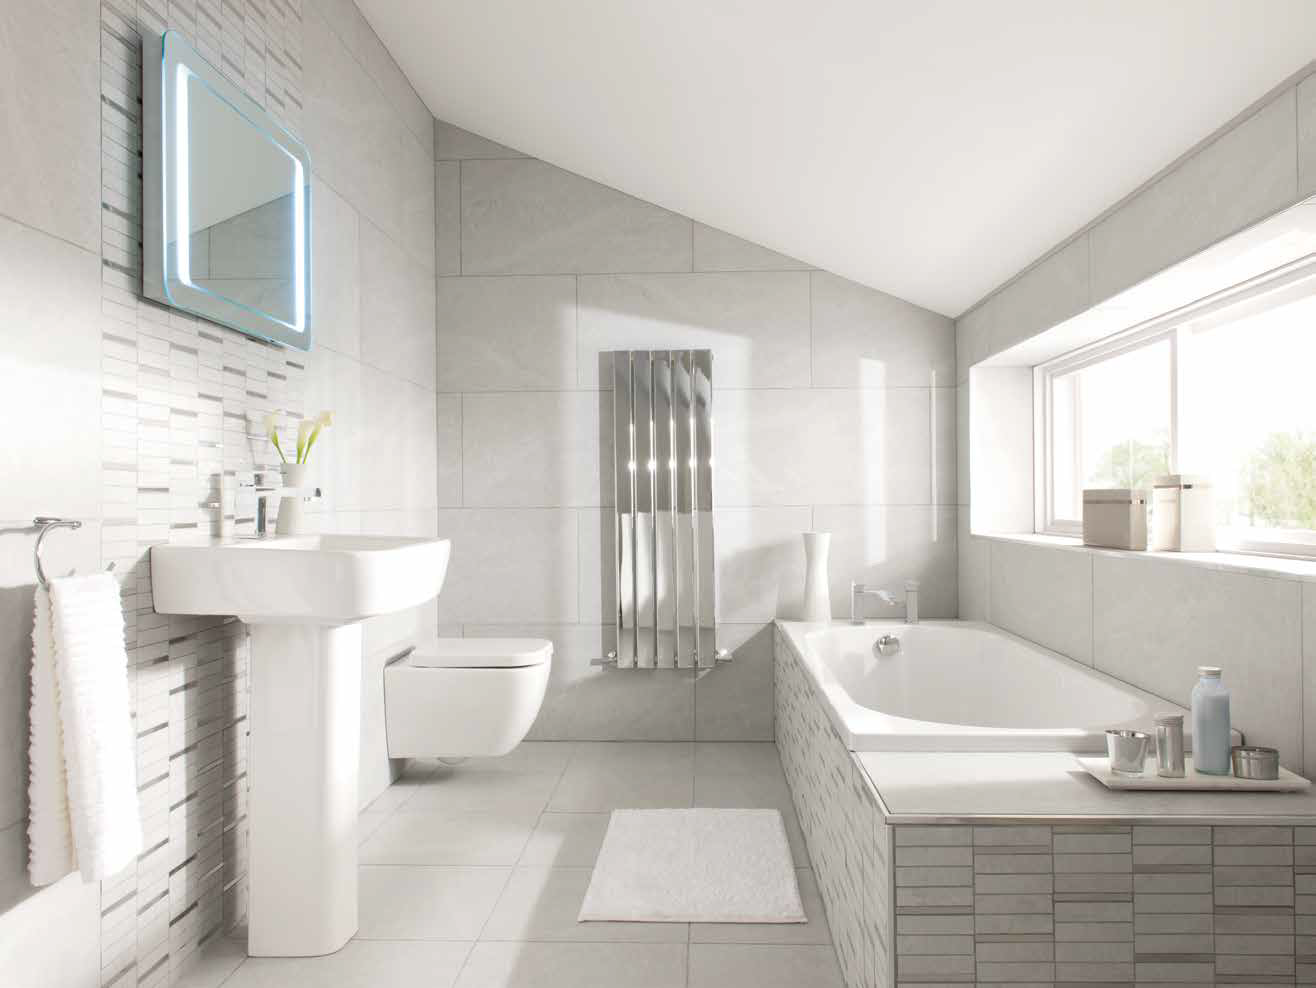 Awesome With An Awkwardly Shaped Bathroom Like This It Can Be Tough To Figure Out  What Design